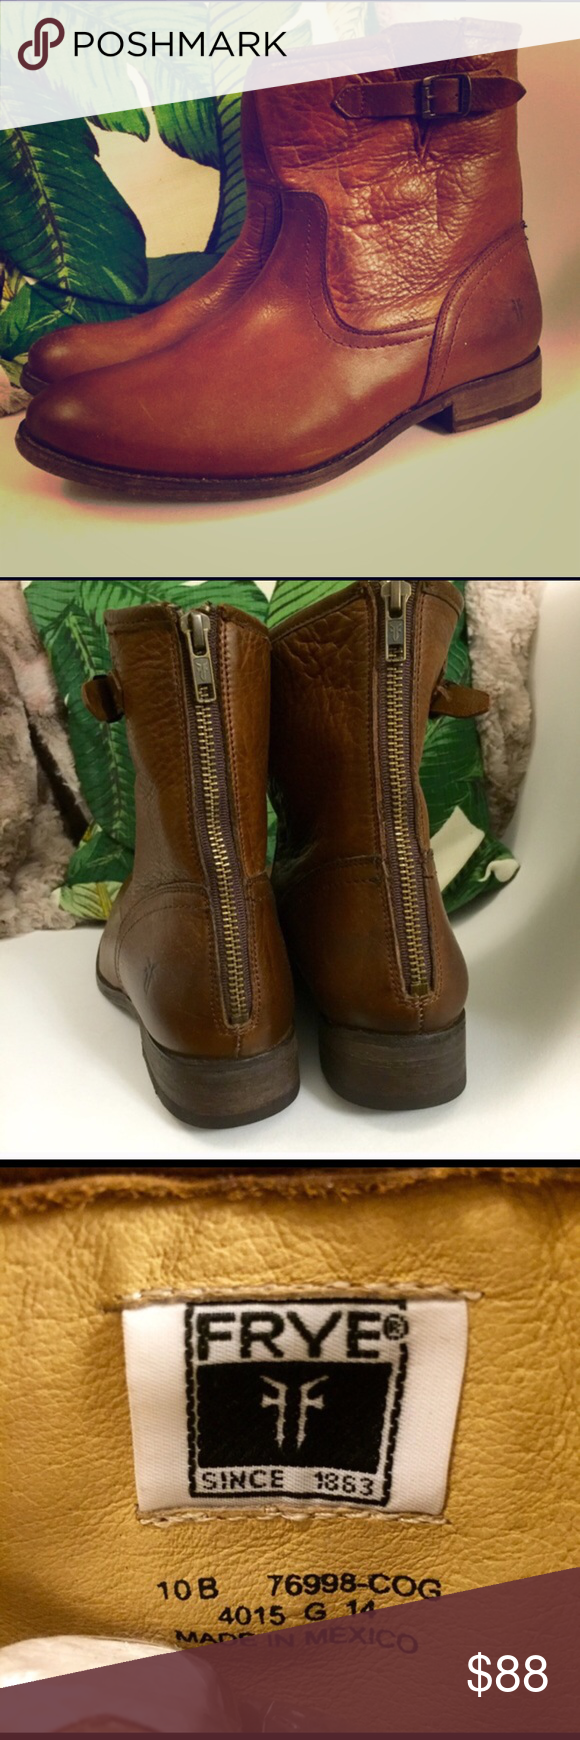 Frye Short Moto Boots Sz 10 Beautiful cognac color and super soft leather. Extremely durable and versatile...pair with jeans, shorts, or even a skirt. Comes 2-3 inches above the ankle. 100% authentic. Size 10. Frye Shoes Ankle Boots & Booties